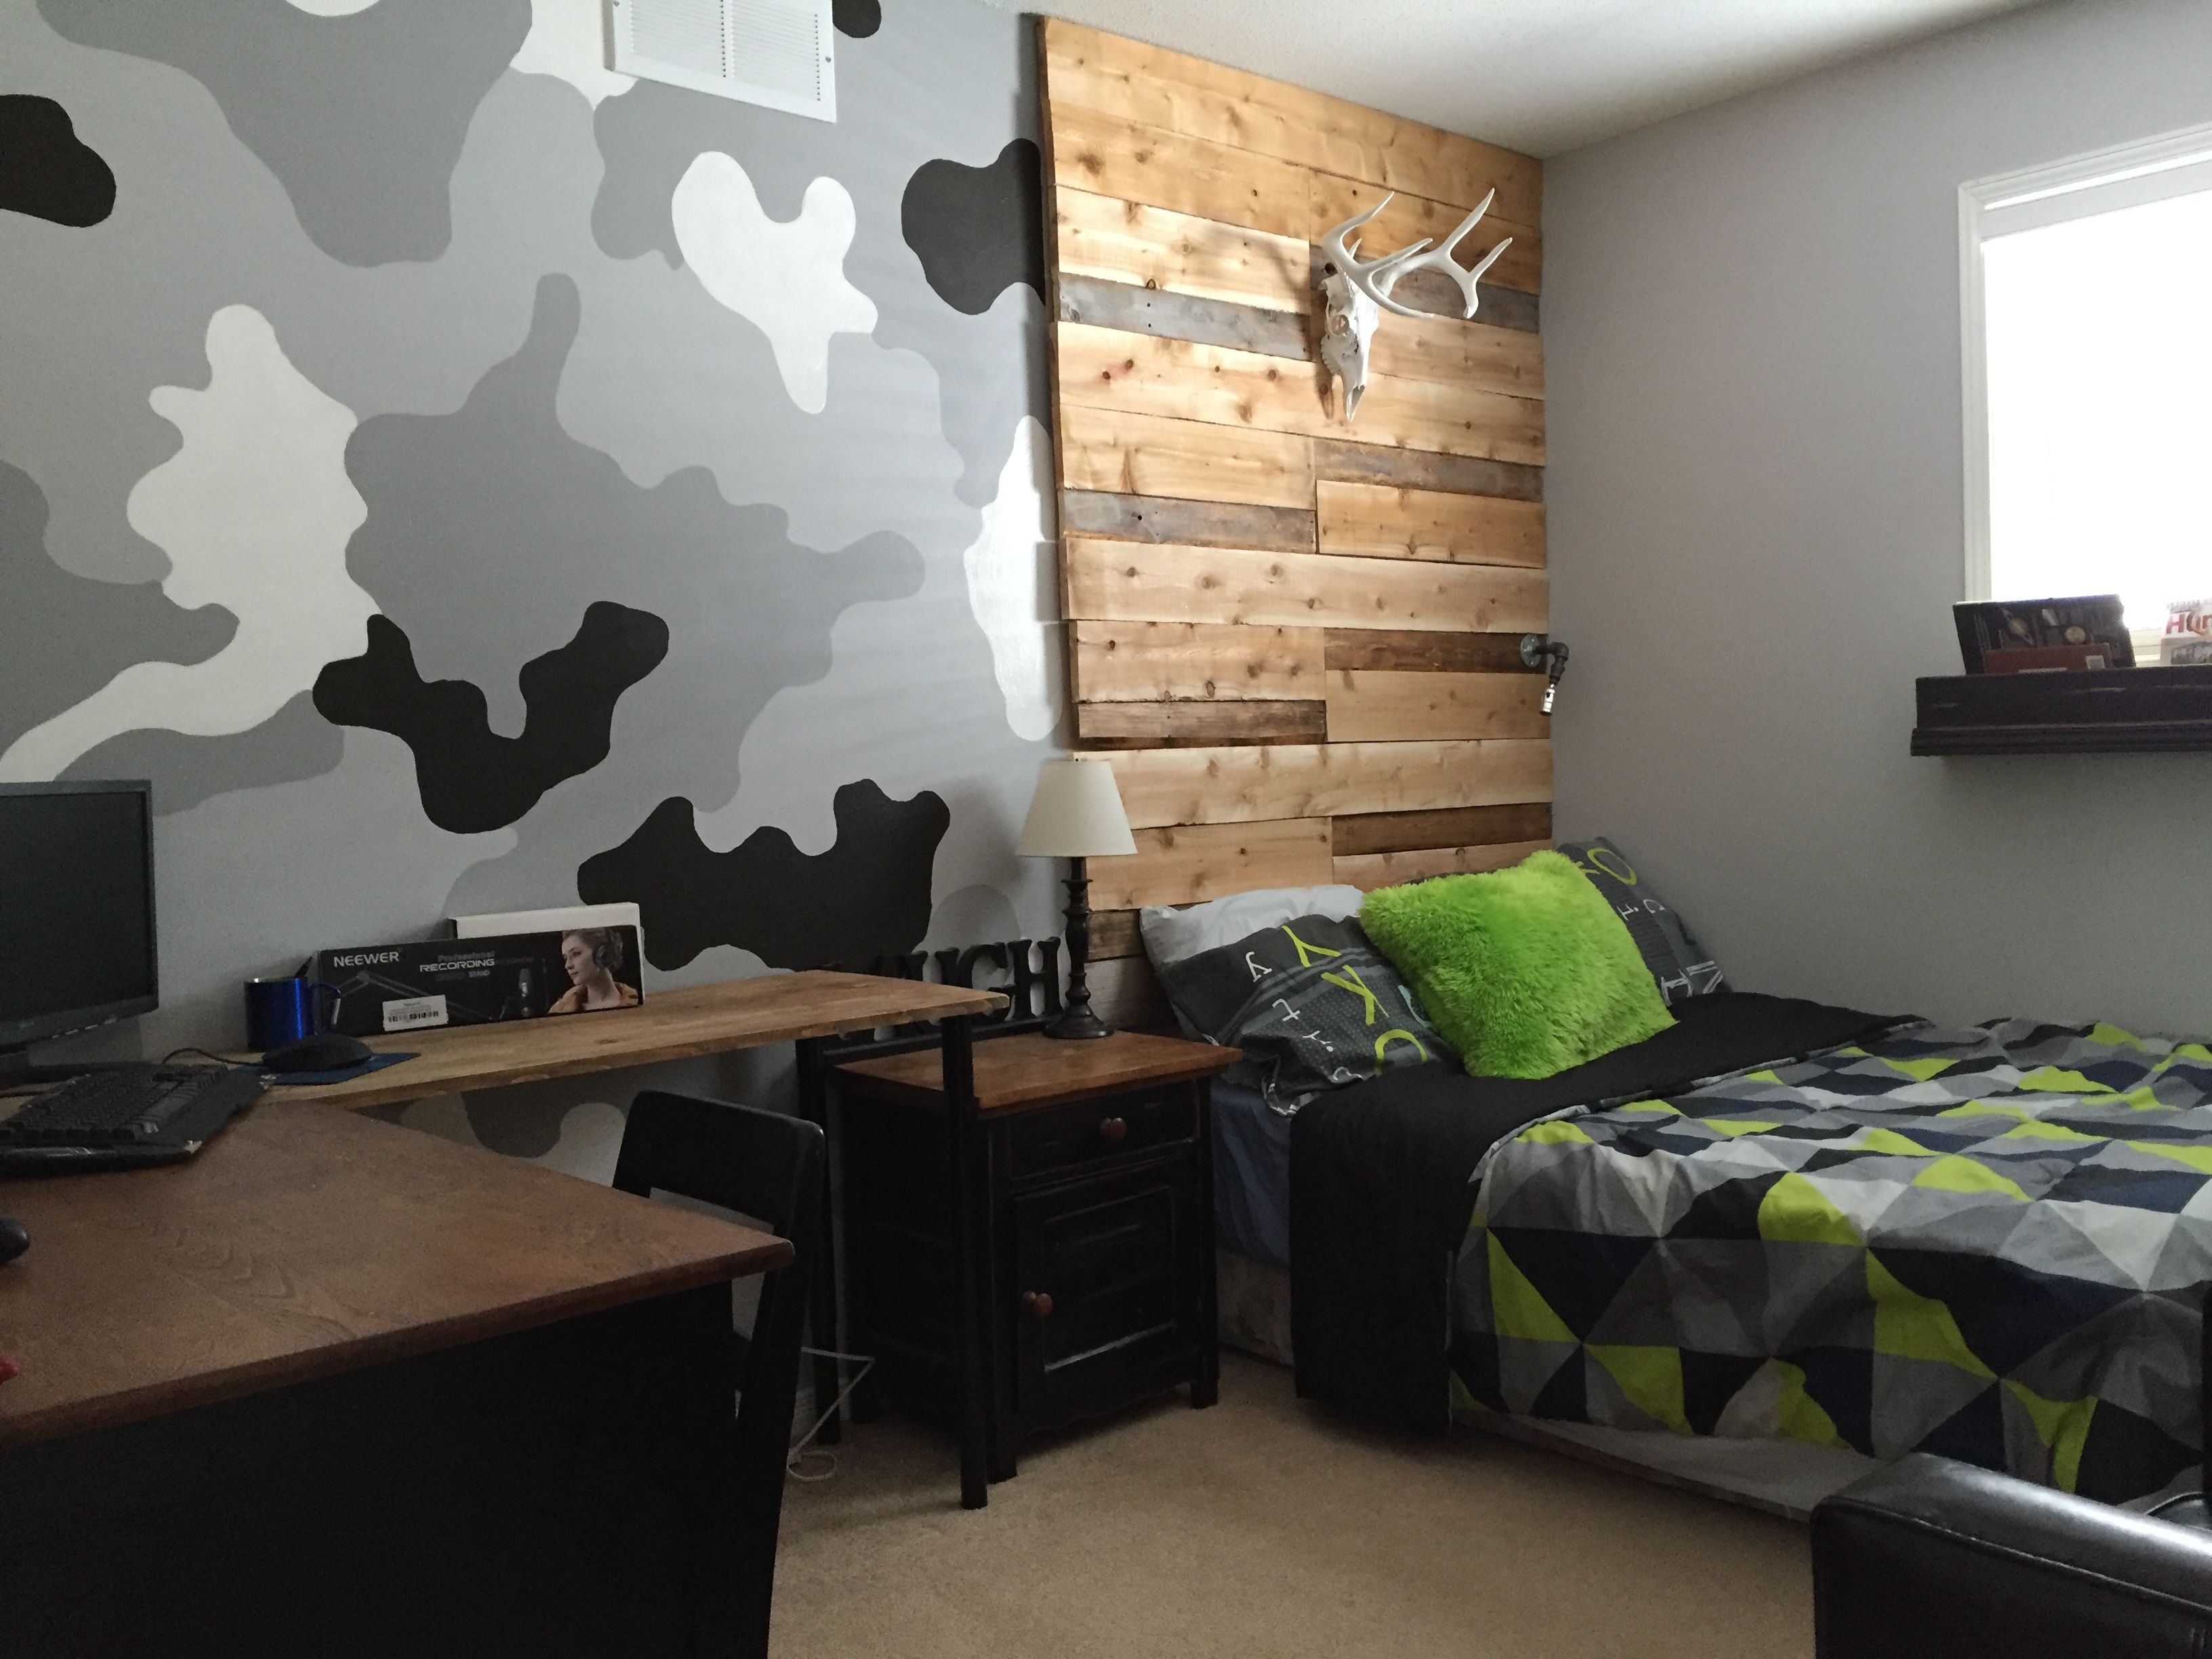 Barn board headboard camouflage wall in boys room rustic boys barn board headboard camouflage wall in boys room rustic boys room wood pallet amipublicfo Choice Image